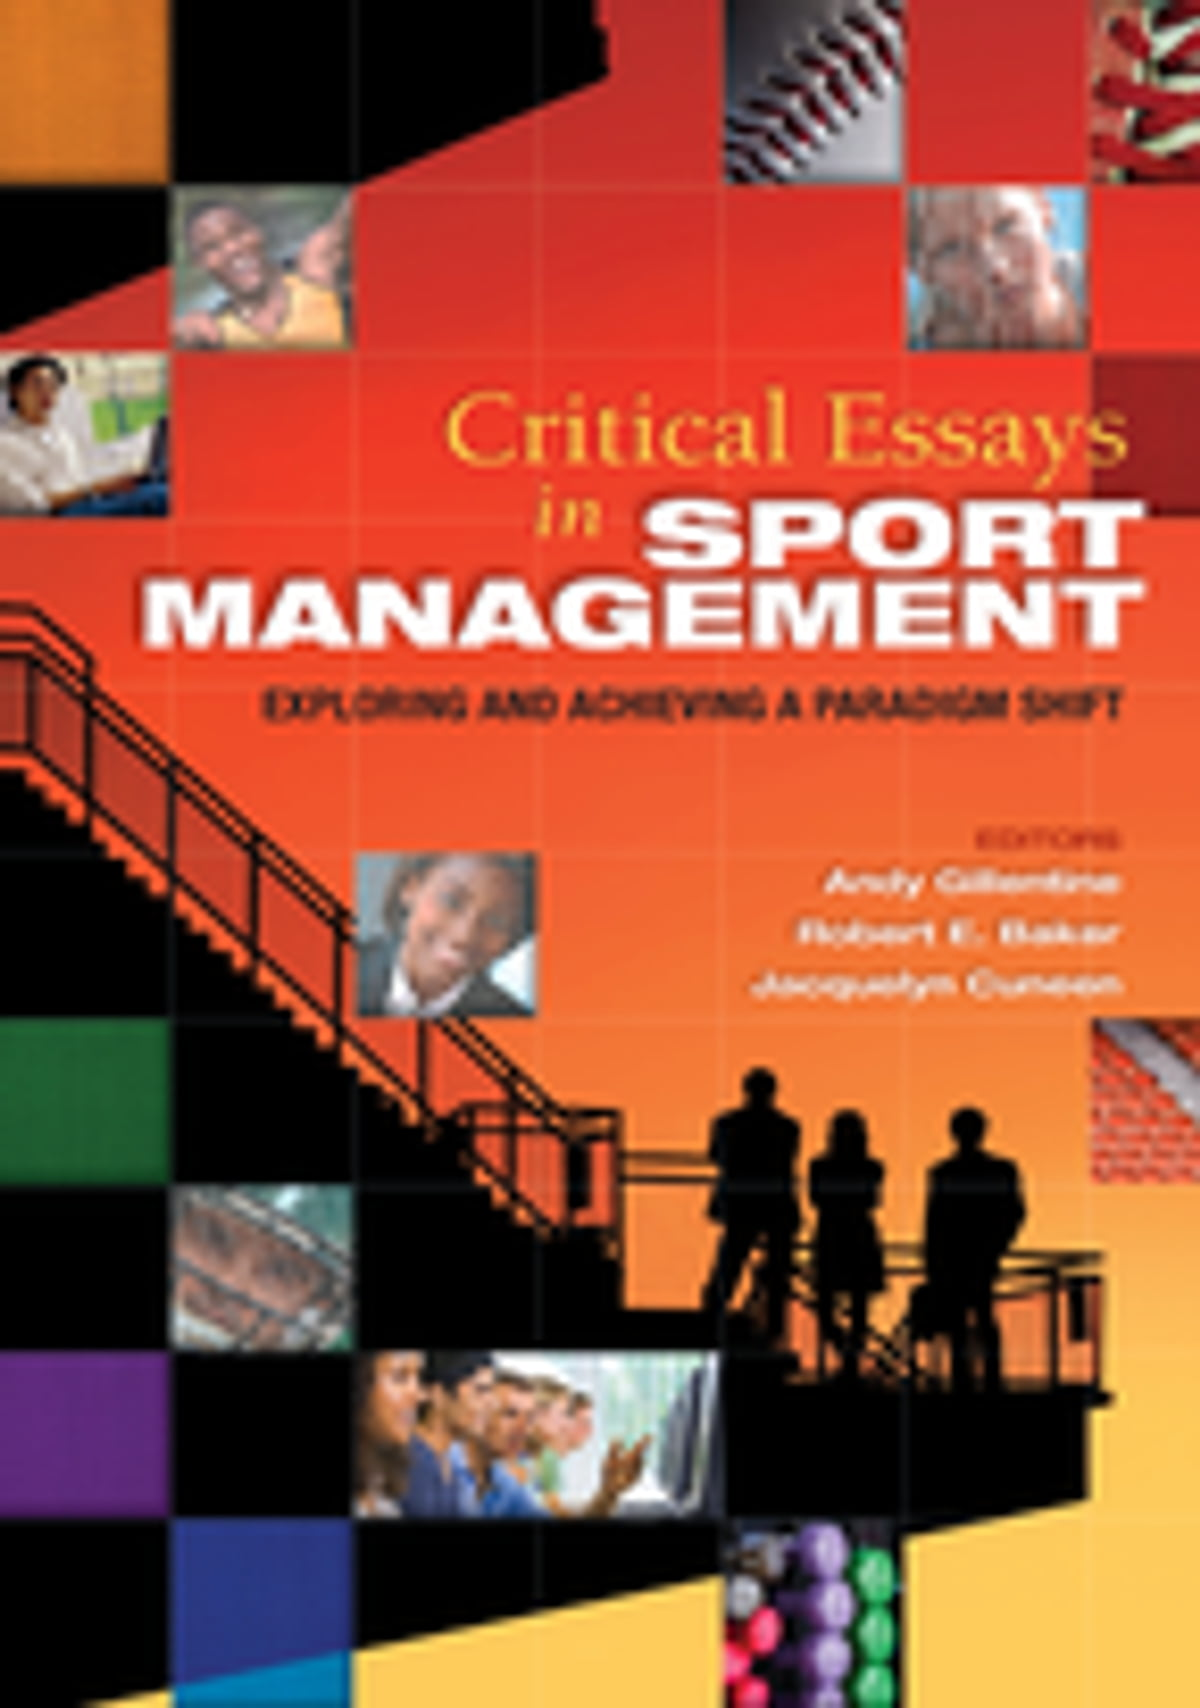 an essay about sports management by jessica quincey Earn your degree in four or five semesters after delving into advanced topics like design management, web applications, advanced motion graphics and more.